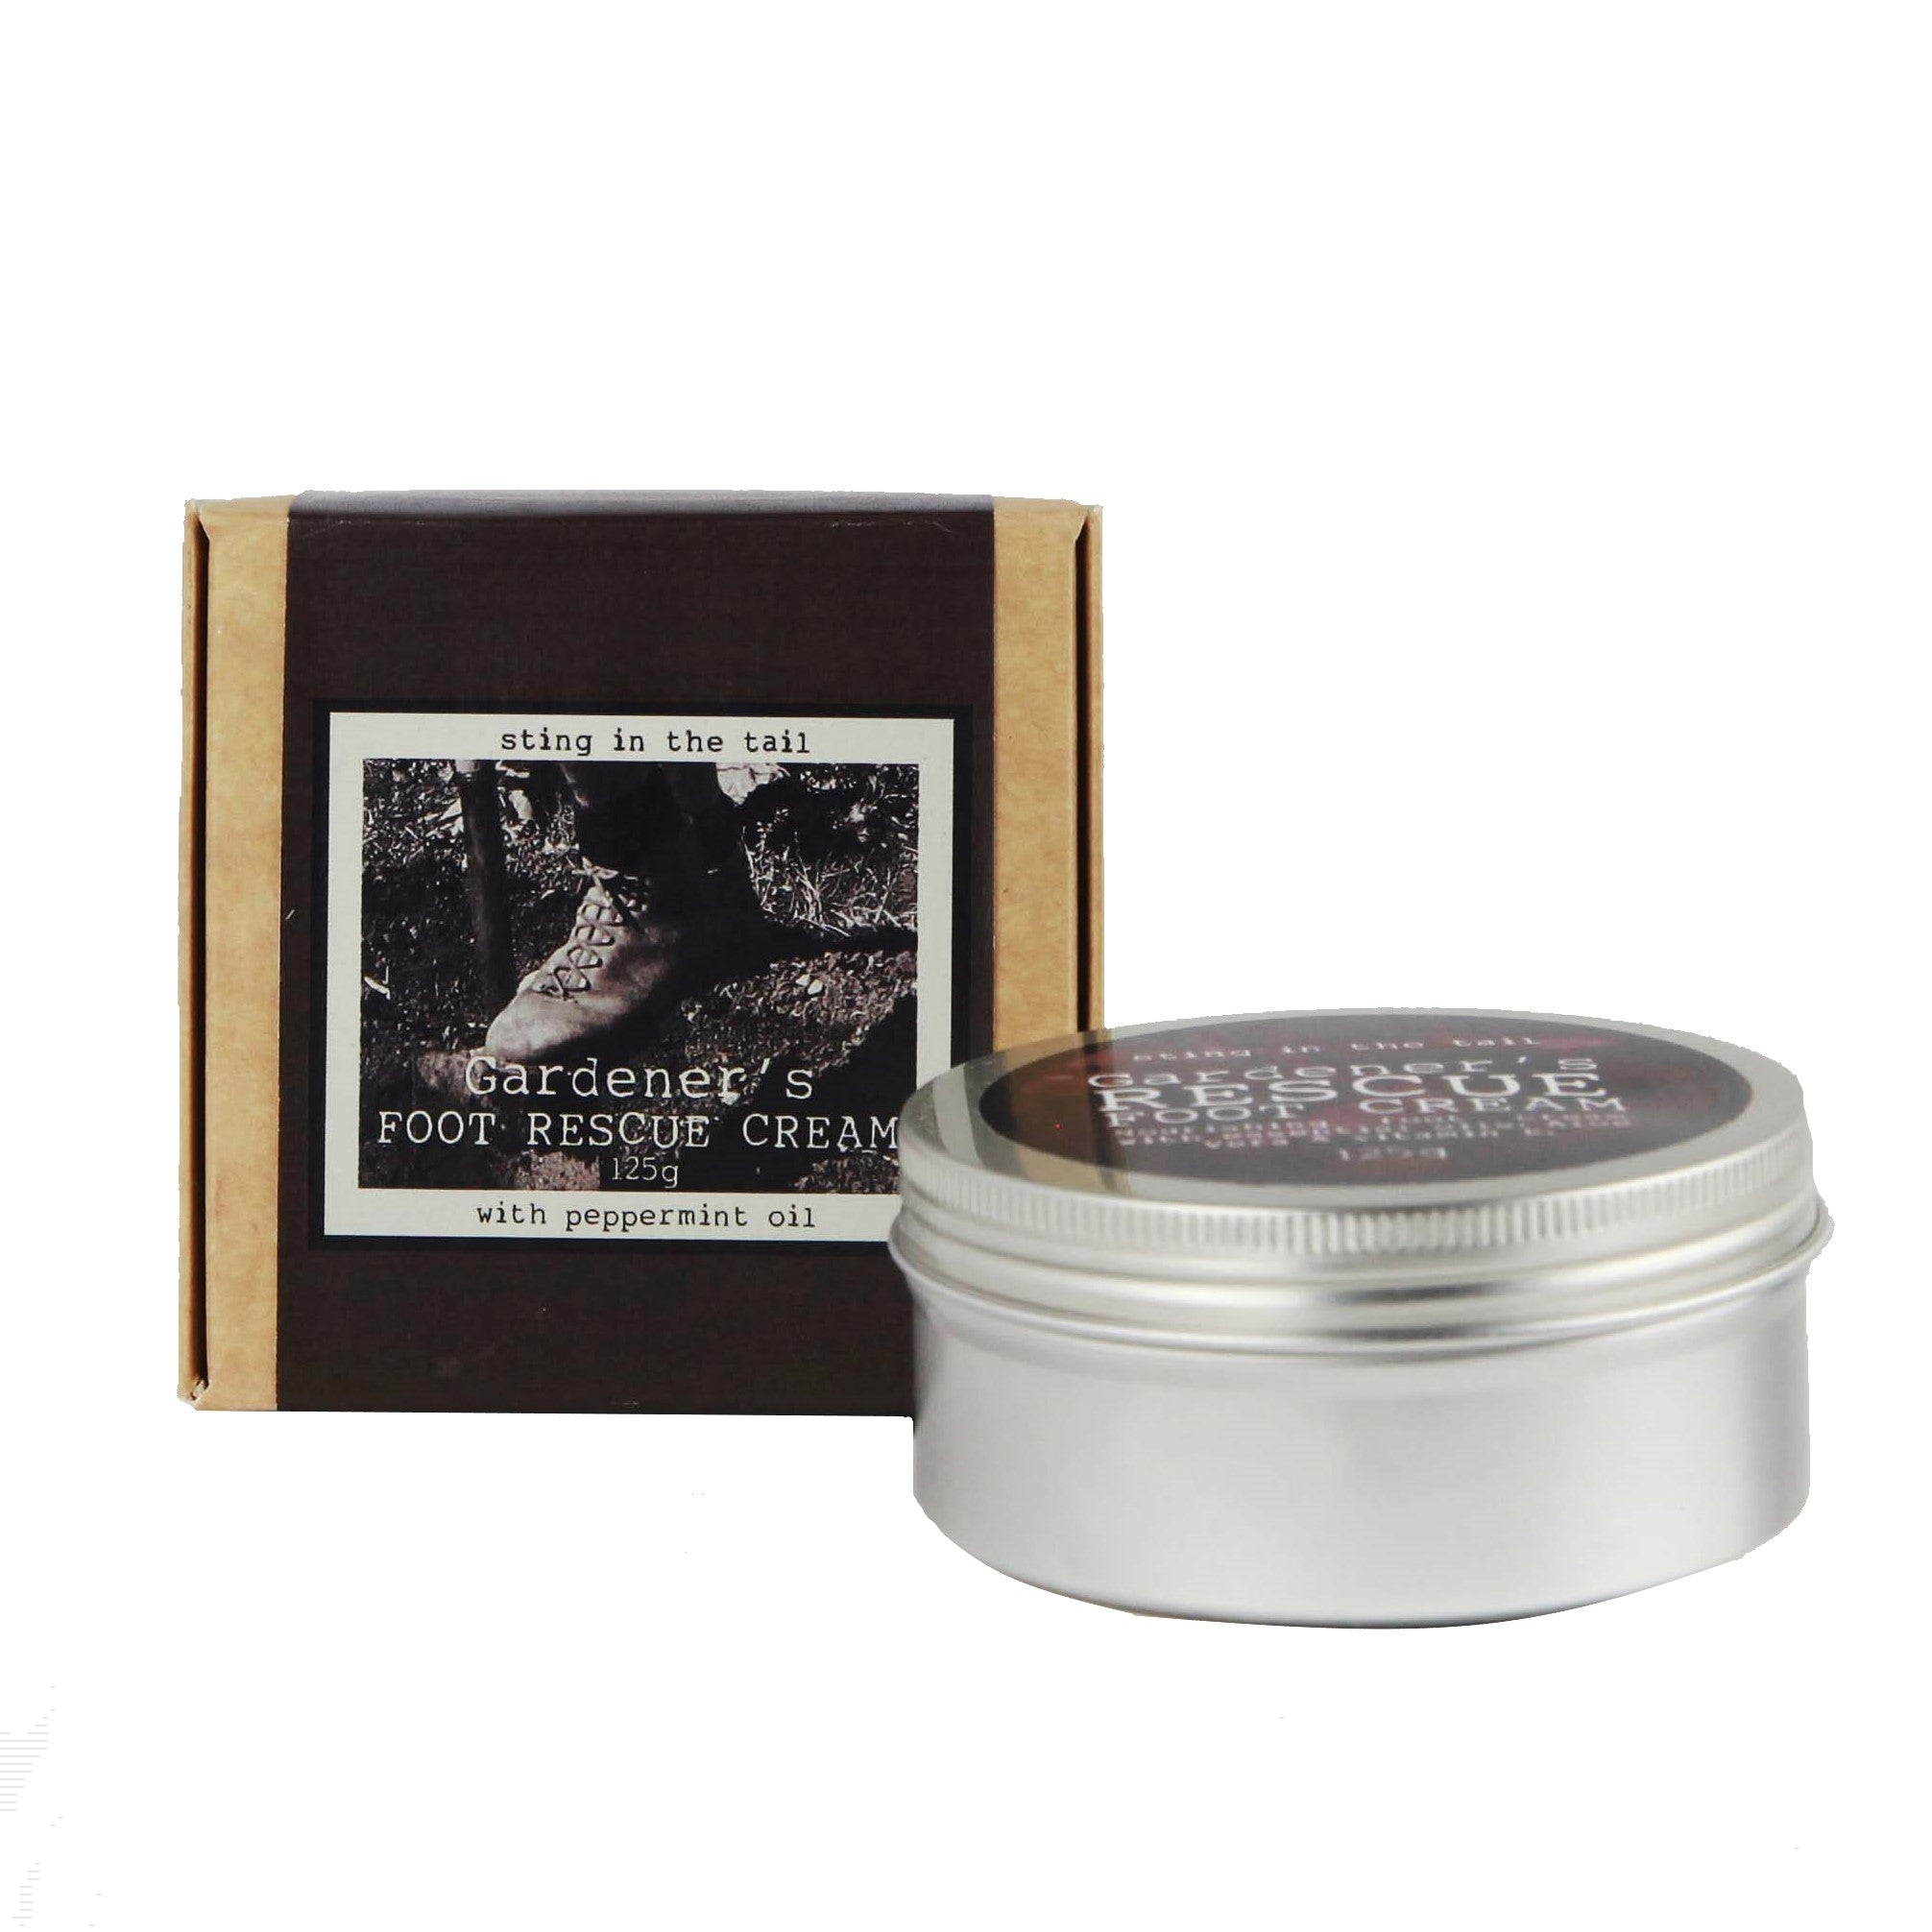 Gardener's Foot Rescue Cream